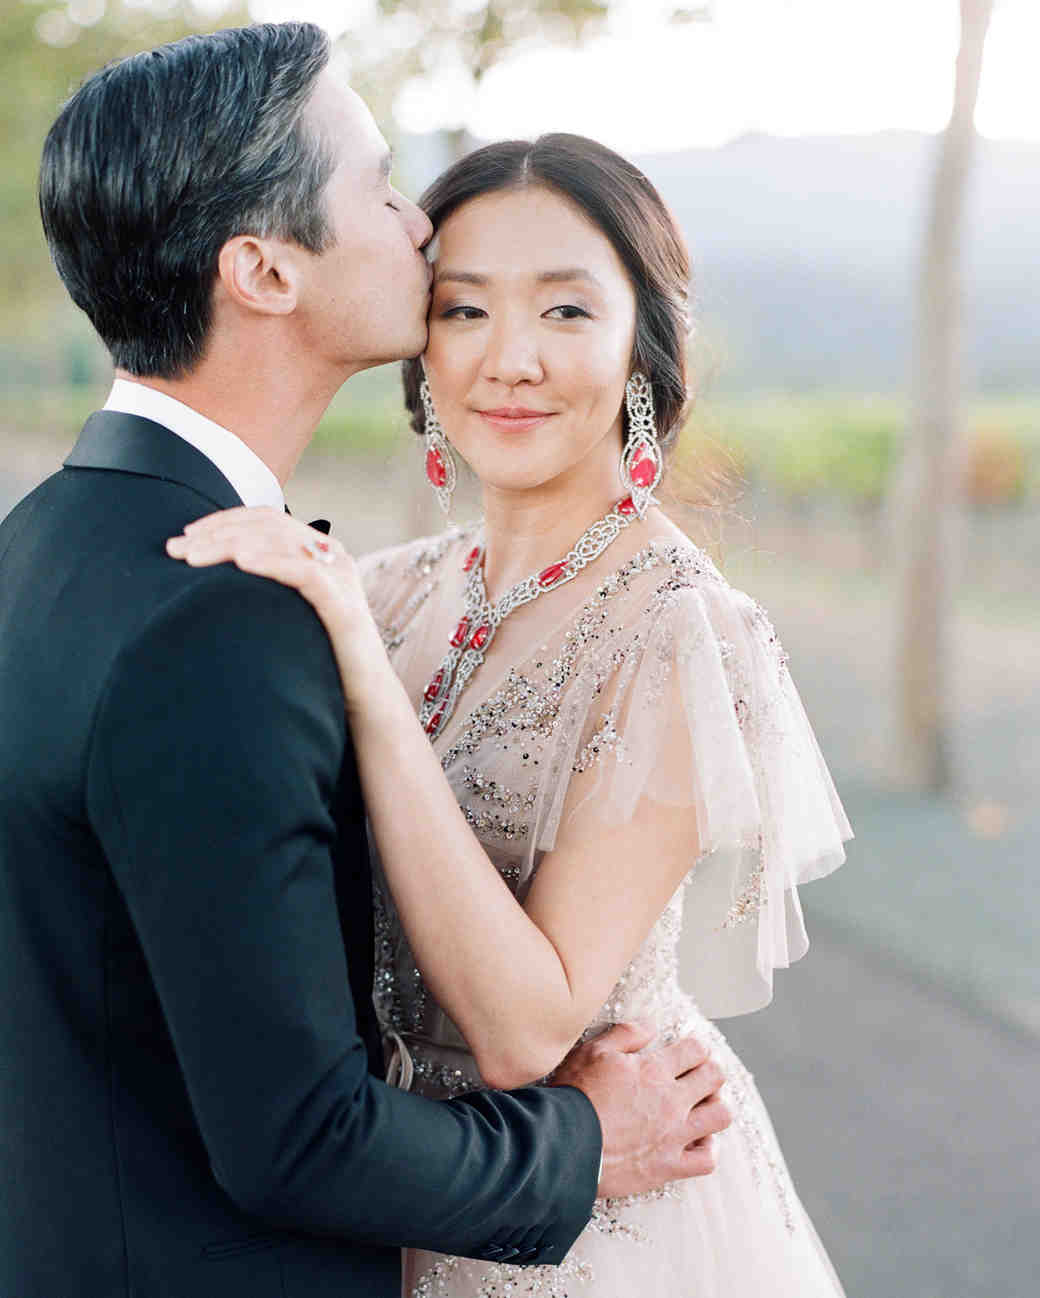 groom kisses bride on the forehead while standing for portraits